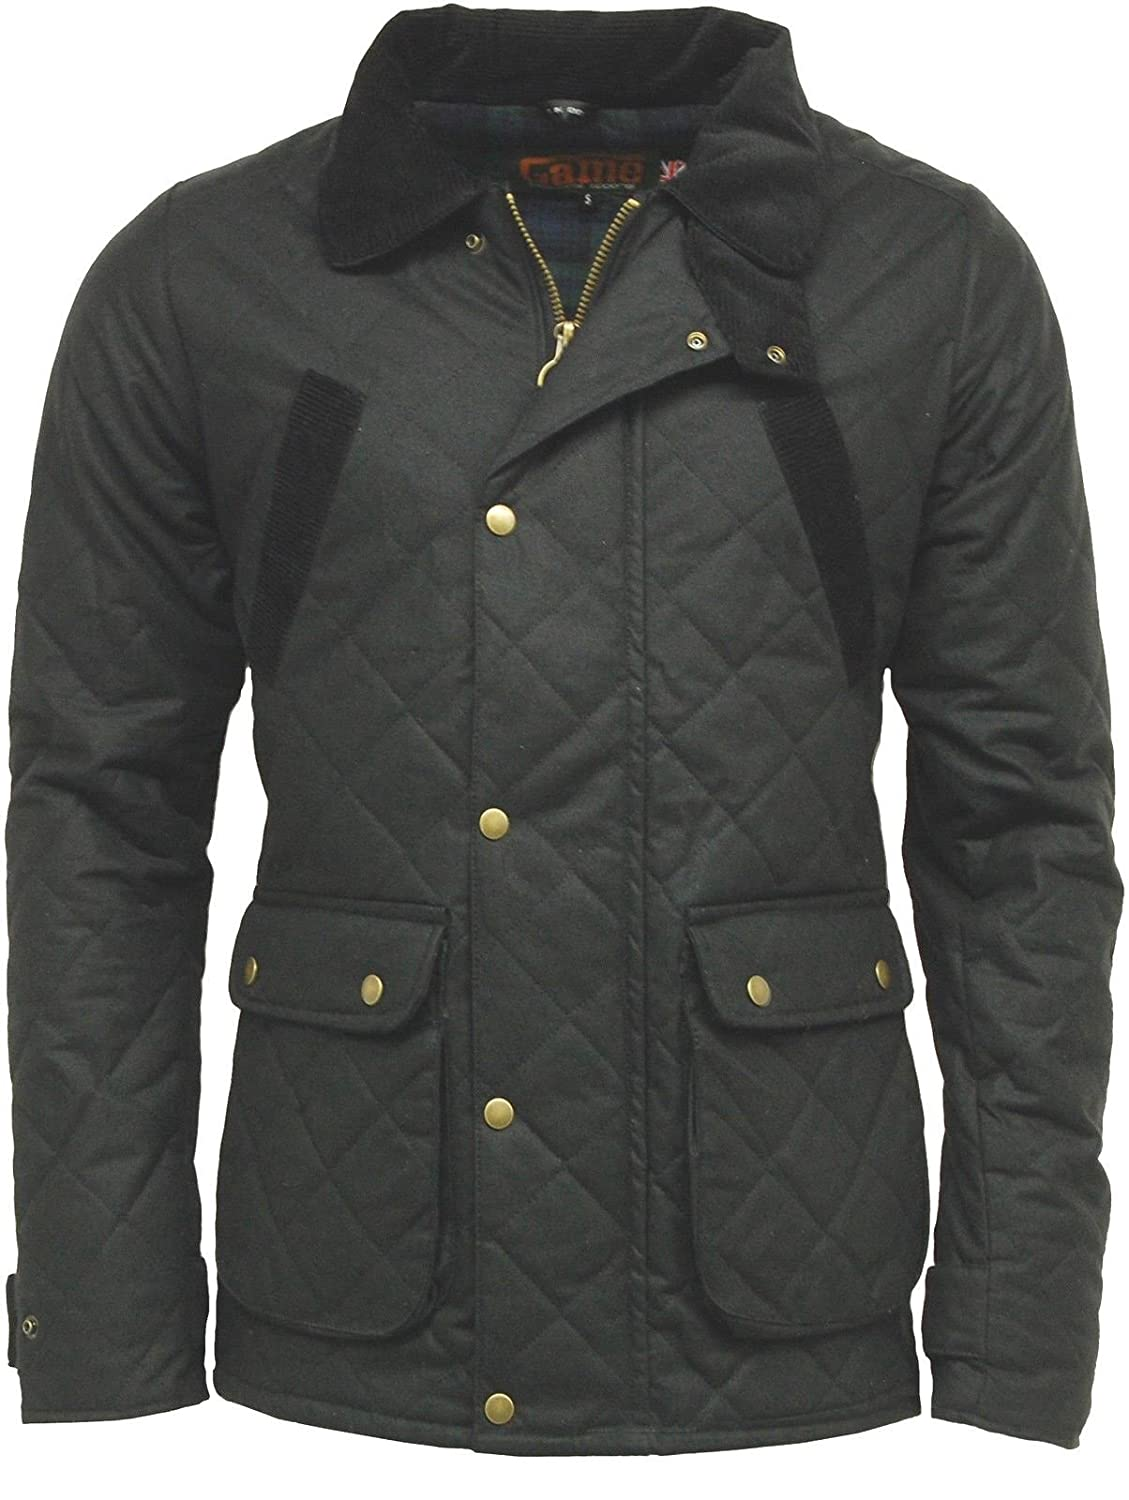 Enjoy a big surprise now on ingmecanica.ml to buy all kinds of discount waxed jackets ! ingmecanica.ml provide a large selection of promotional waxed cotton jackets on sale at cheap price and excellent crafts. See your favorite soft leather long jackets and dark blue long jacket fur discounted & on sale. Free shipping available.